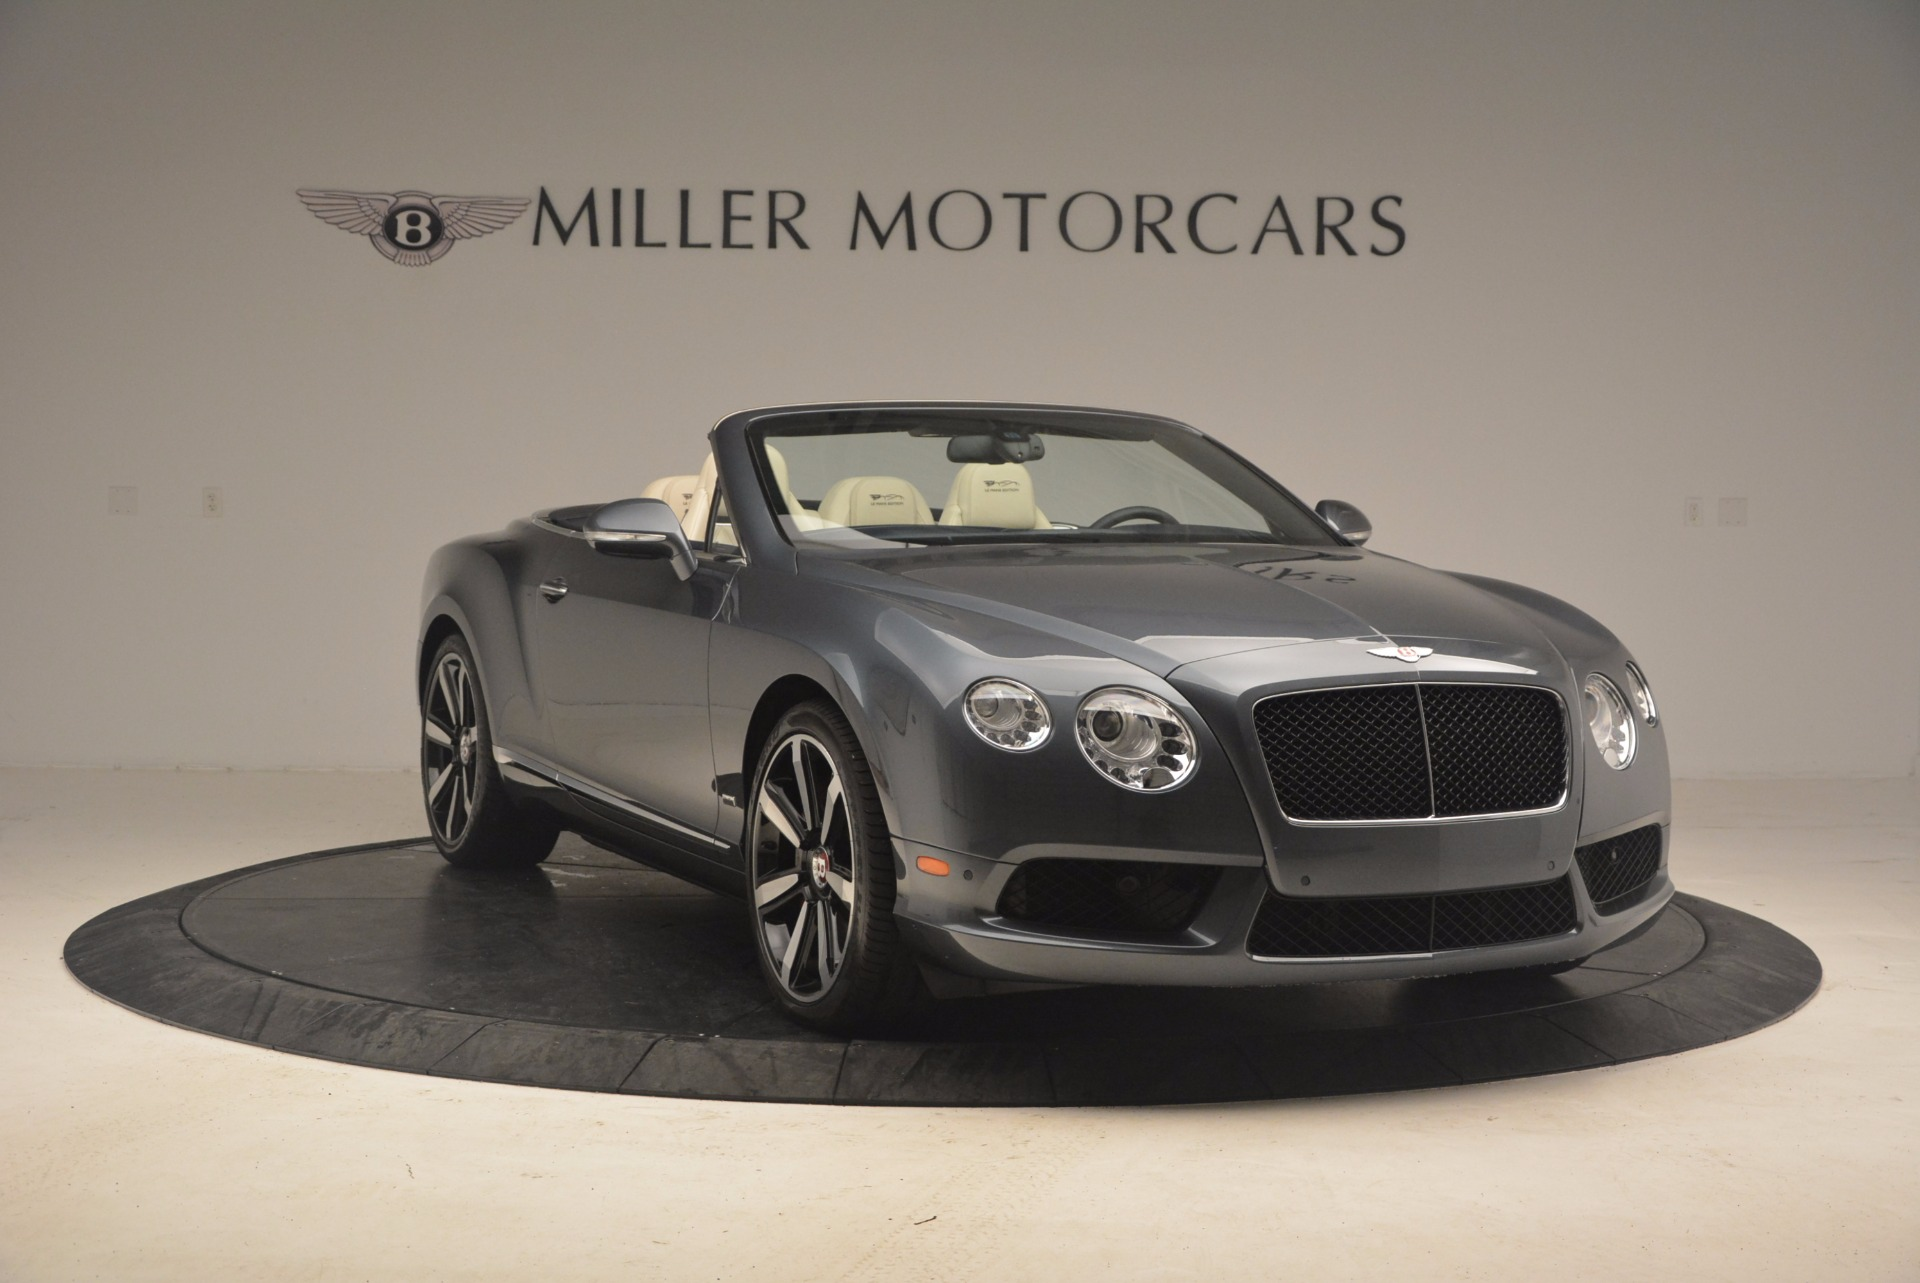 Used 2013 Bentley Continental GT V8 Le Mans Edition, 1 of 48 For Sale In Greenwich, CT 1288_p11